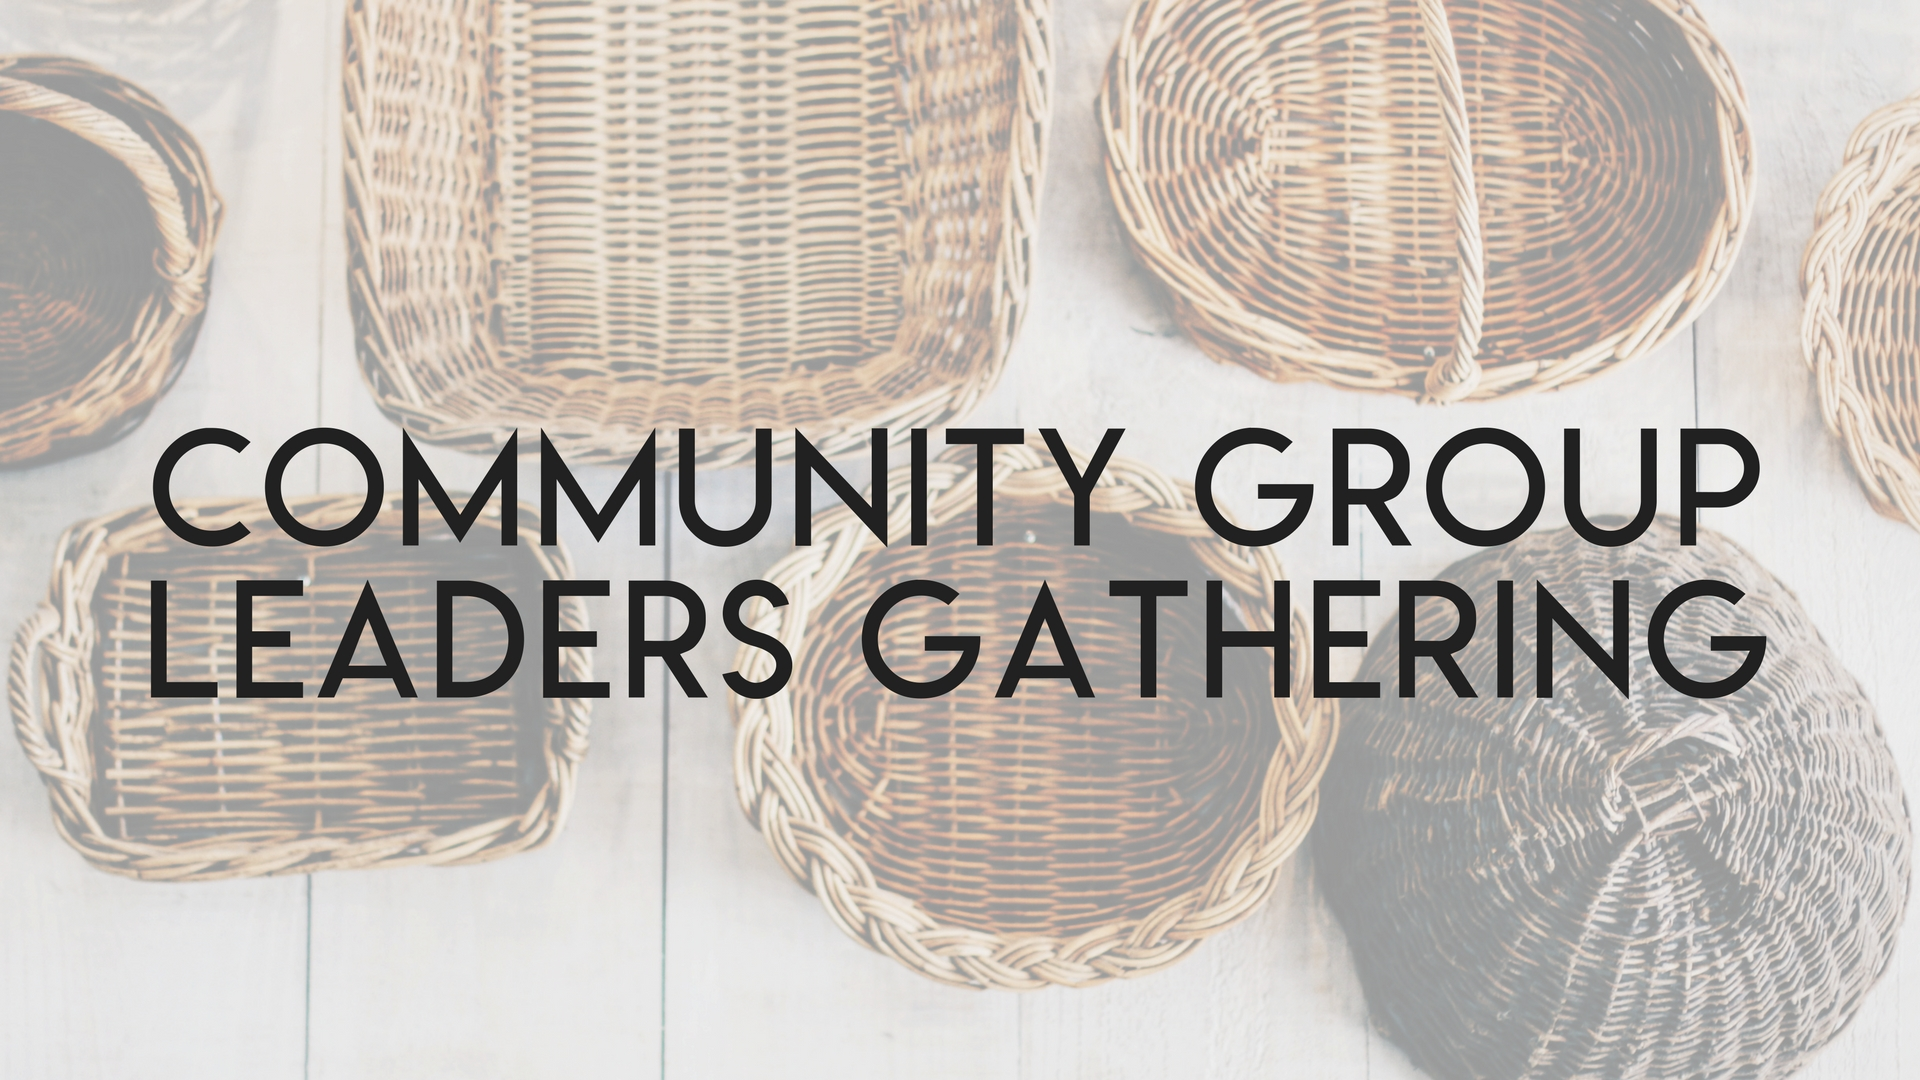 Community group leaders gathering